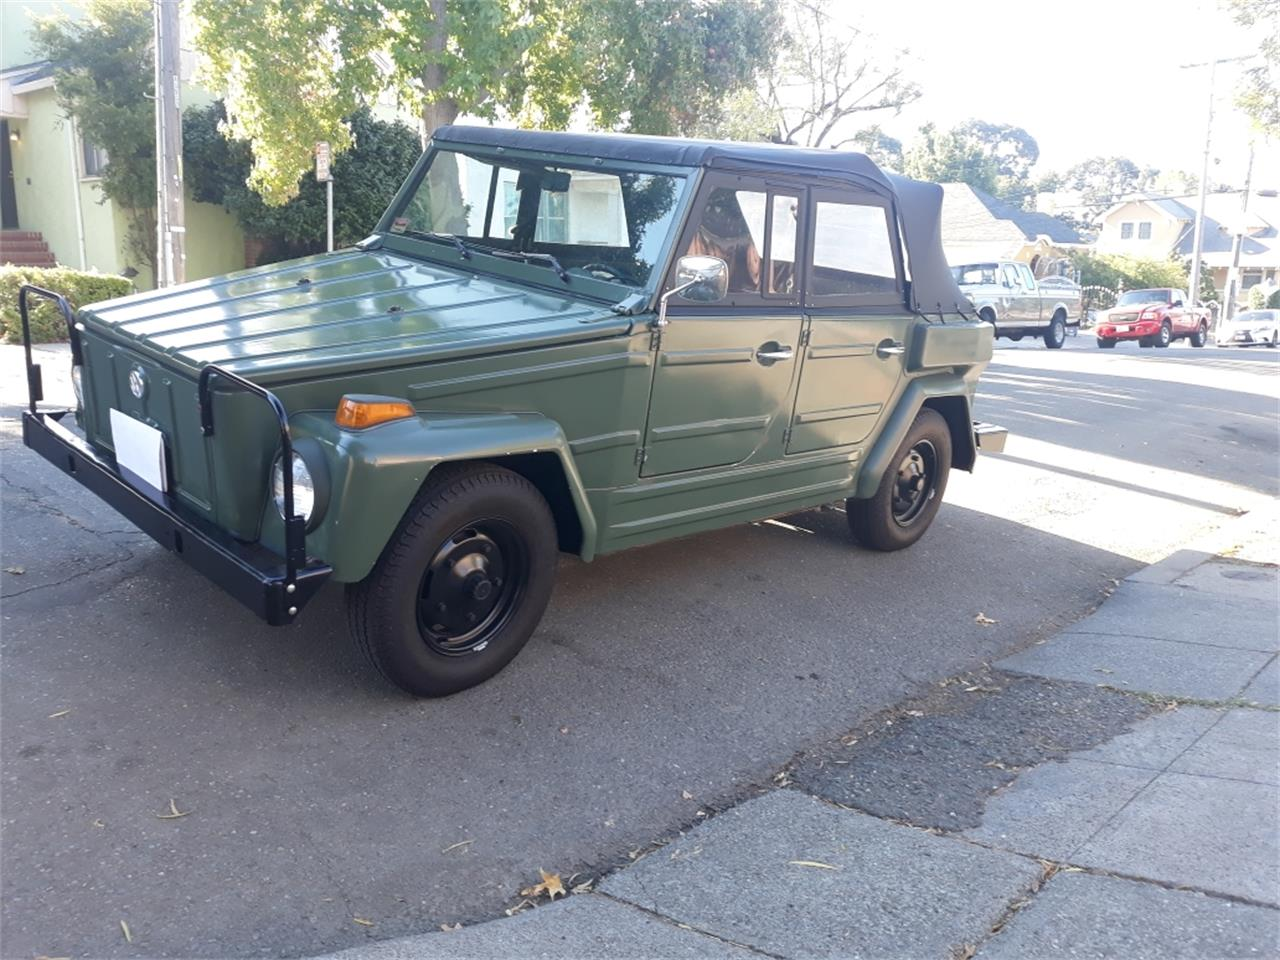 for sale 1974 volkswagen thing in oakland, california cars - oakland, ca at geebo